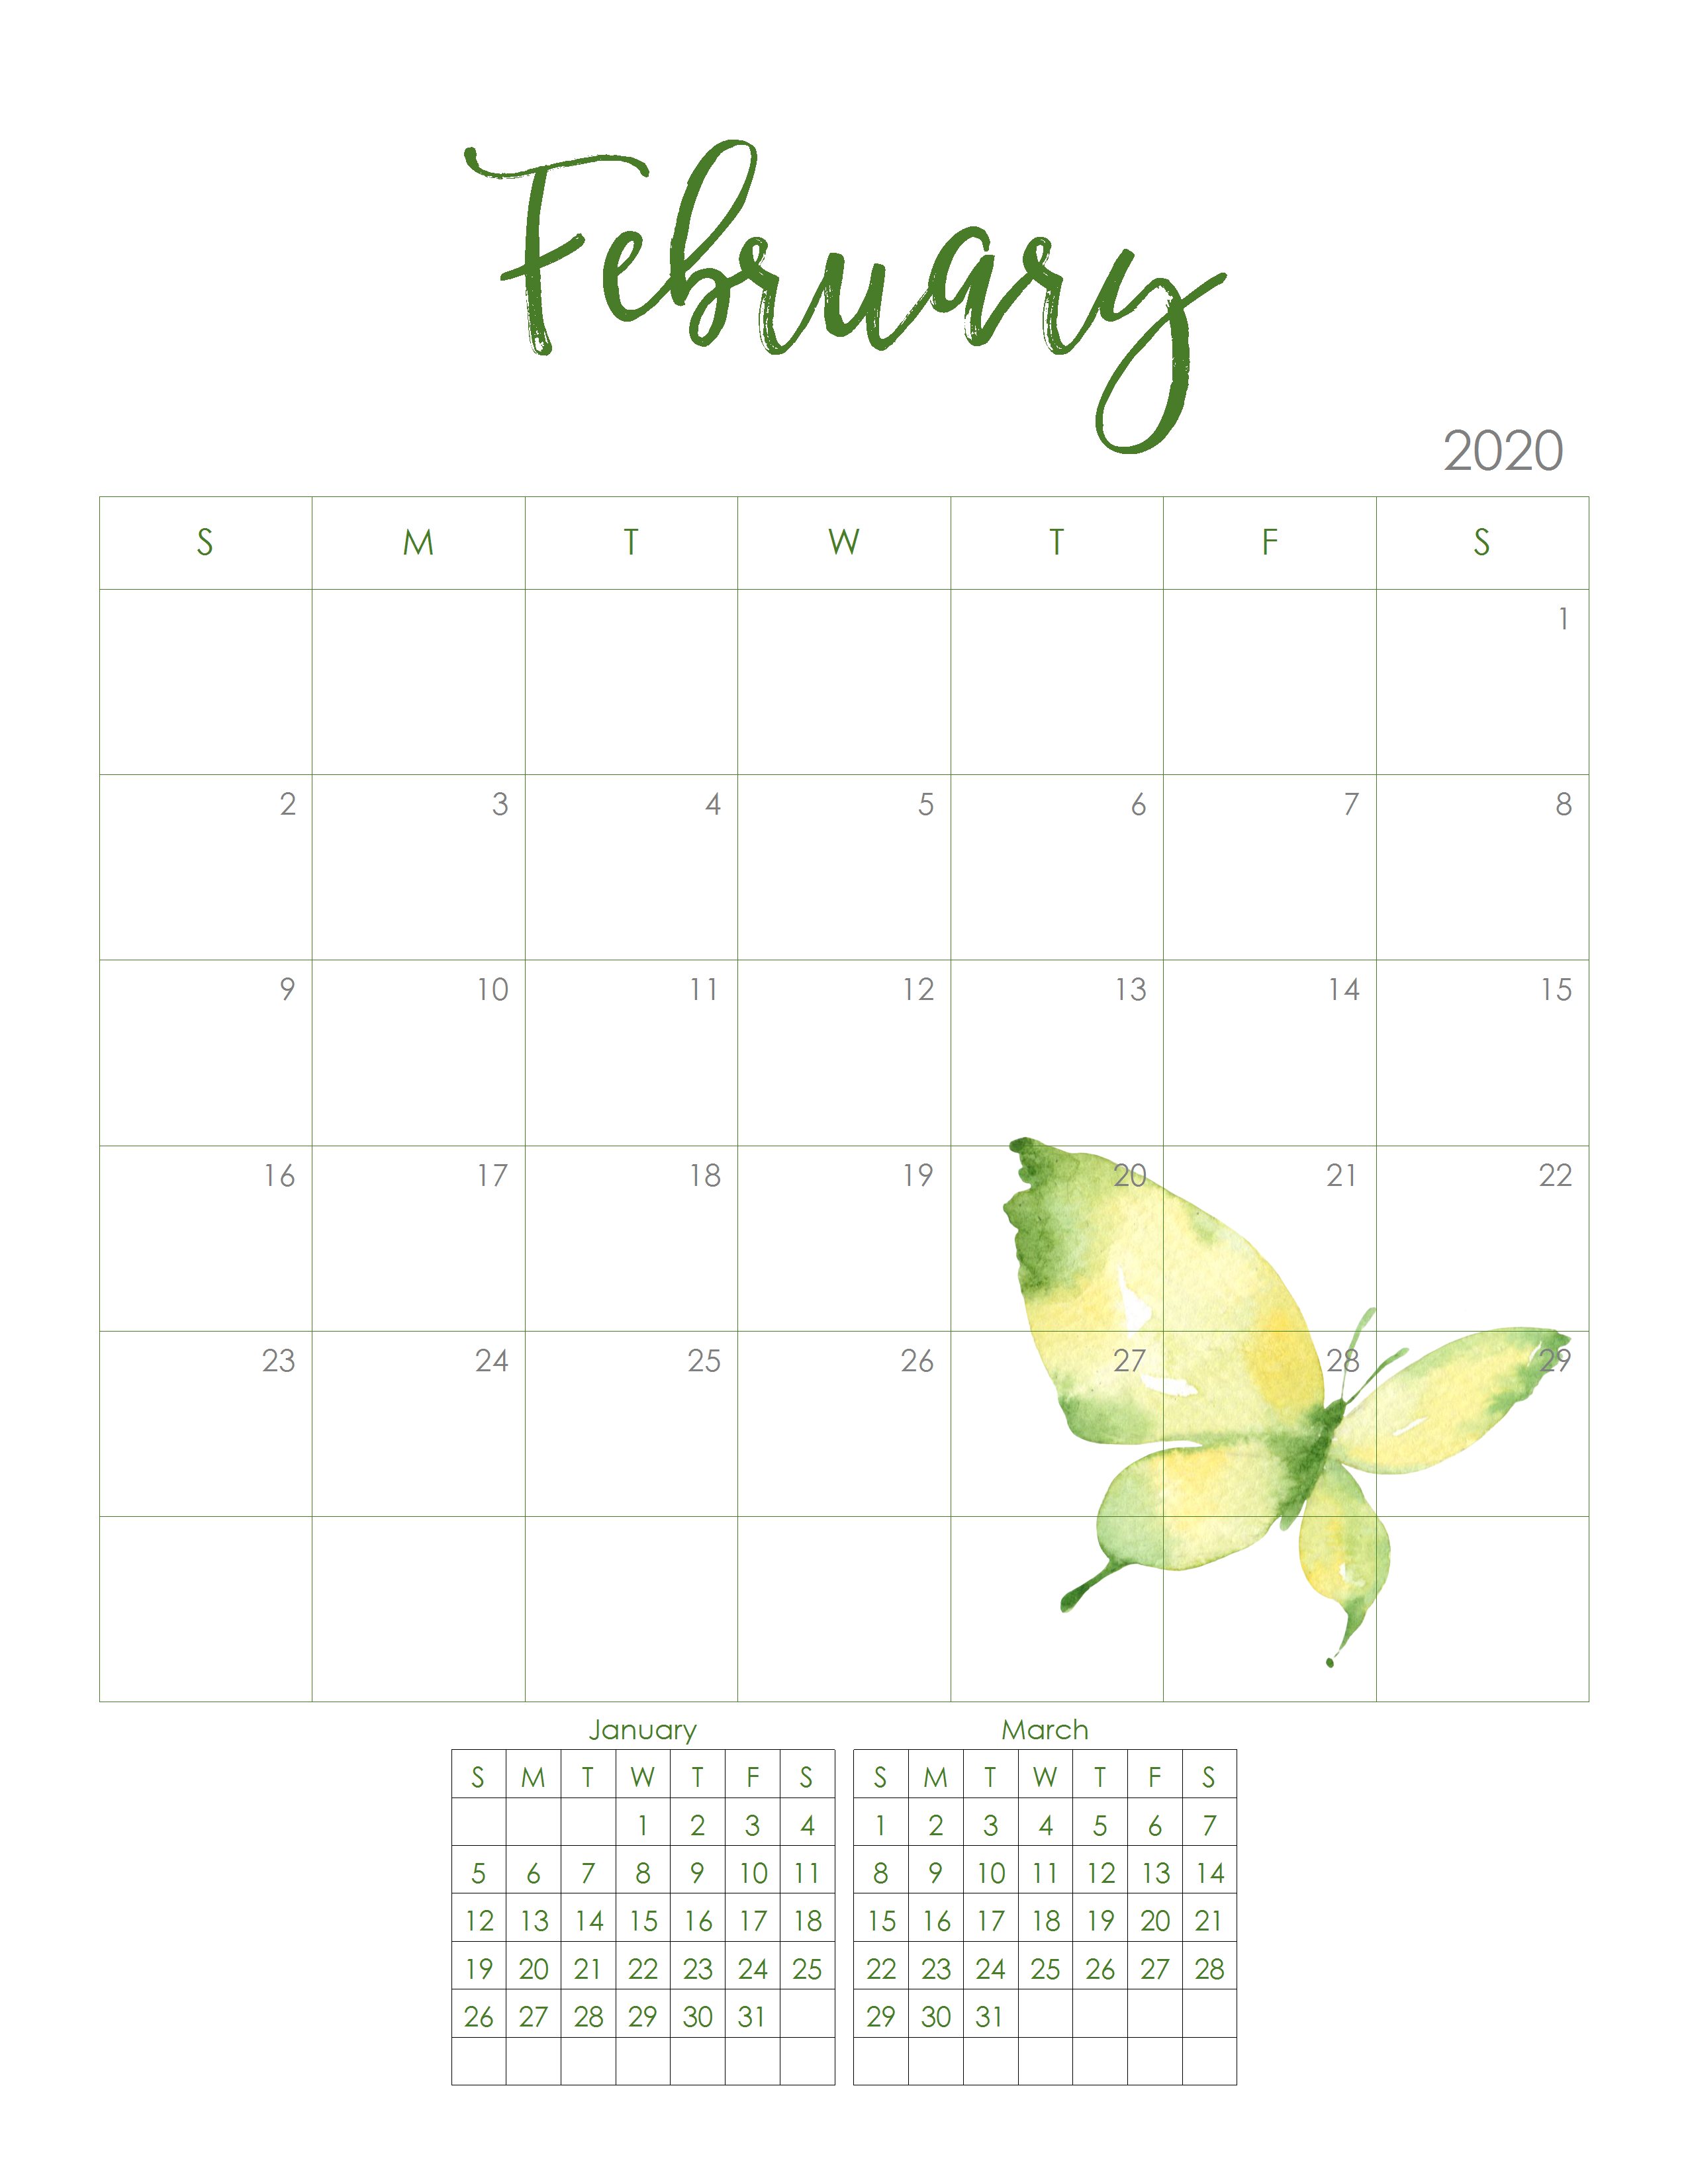 This is a graphic of Clean Free Printable Calendars Feb 2020